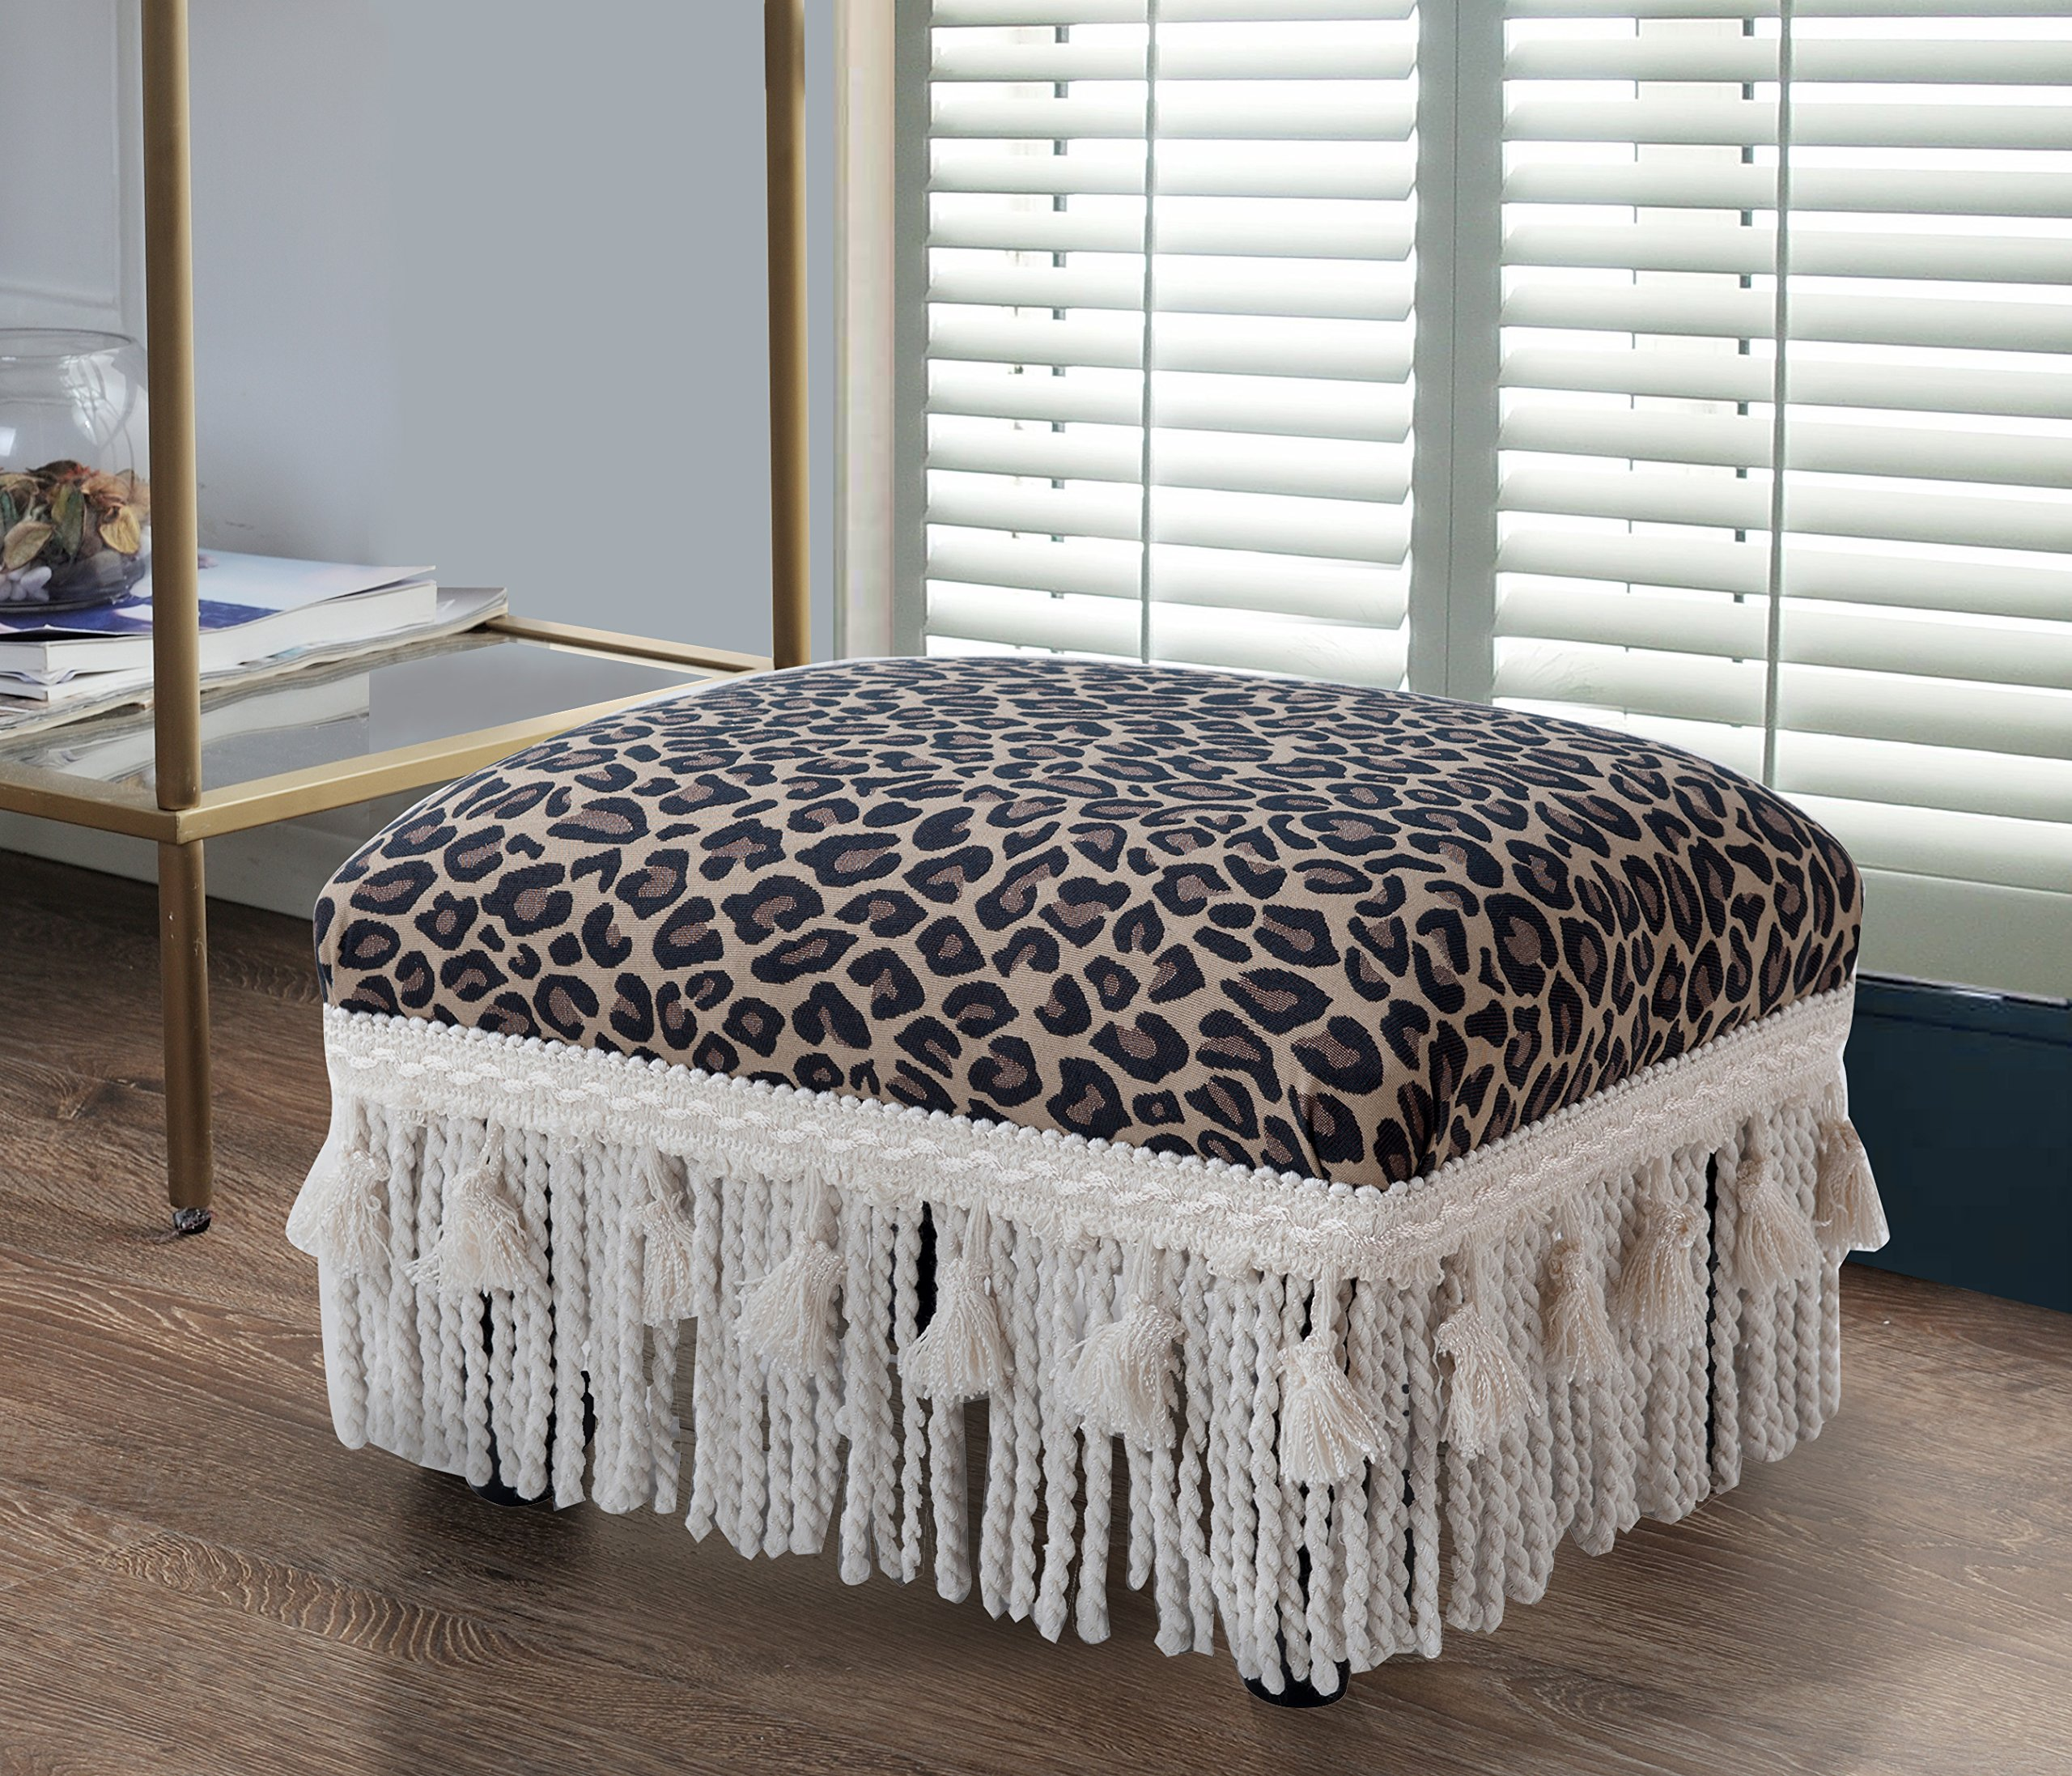 Jennifer Taylor Home 2318-655 Decorative Fiona Collection Traditional Upholstered Rayon Blend Footstool with Fringe and Trim Tassels, Multi-Colored, Brown/Beige by Jennifer Taylor Home (Image #2)